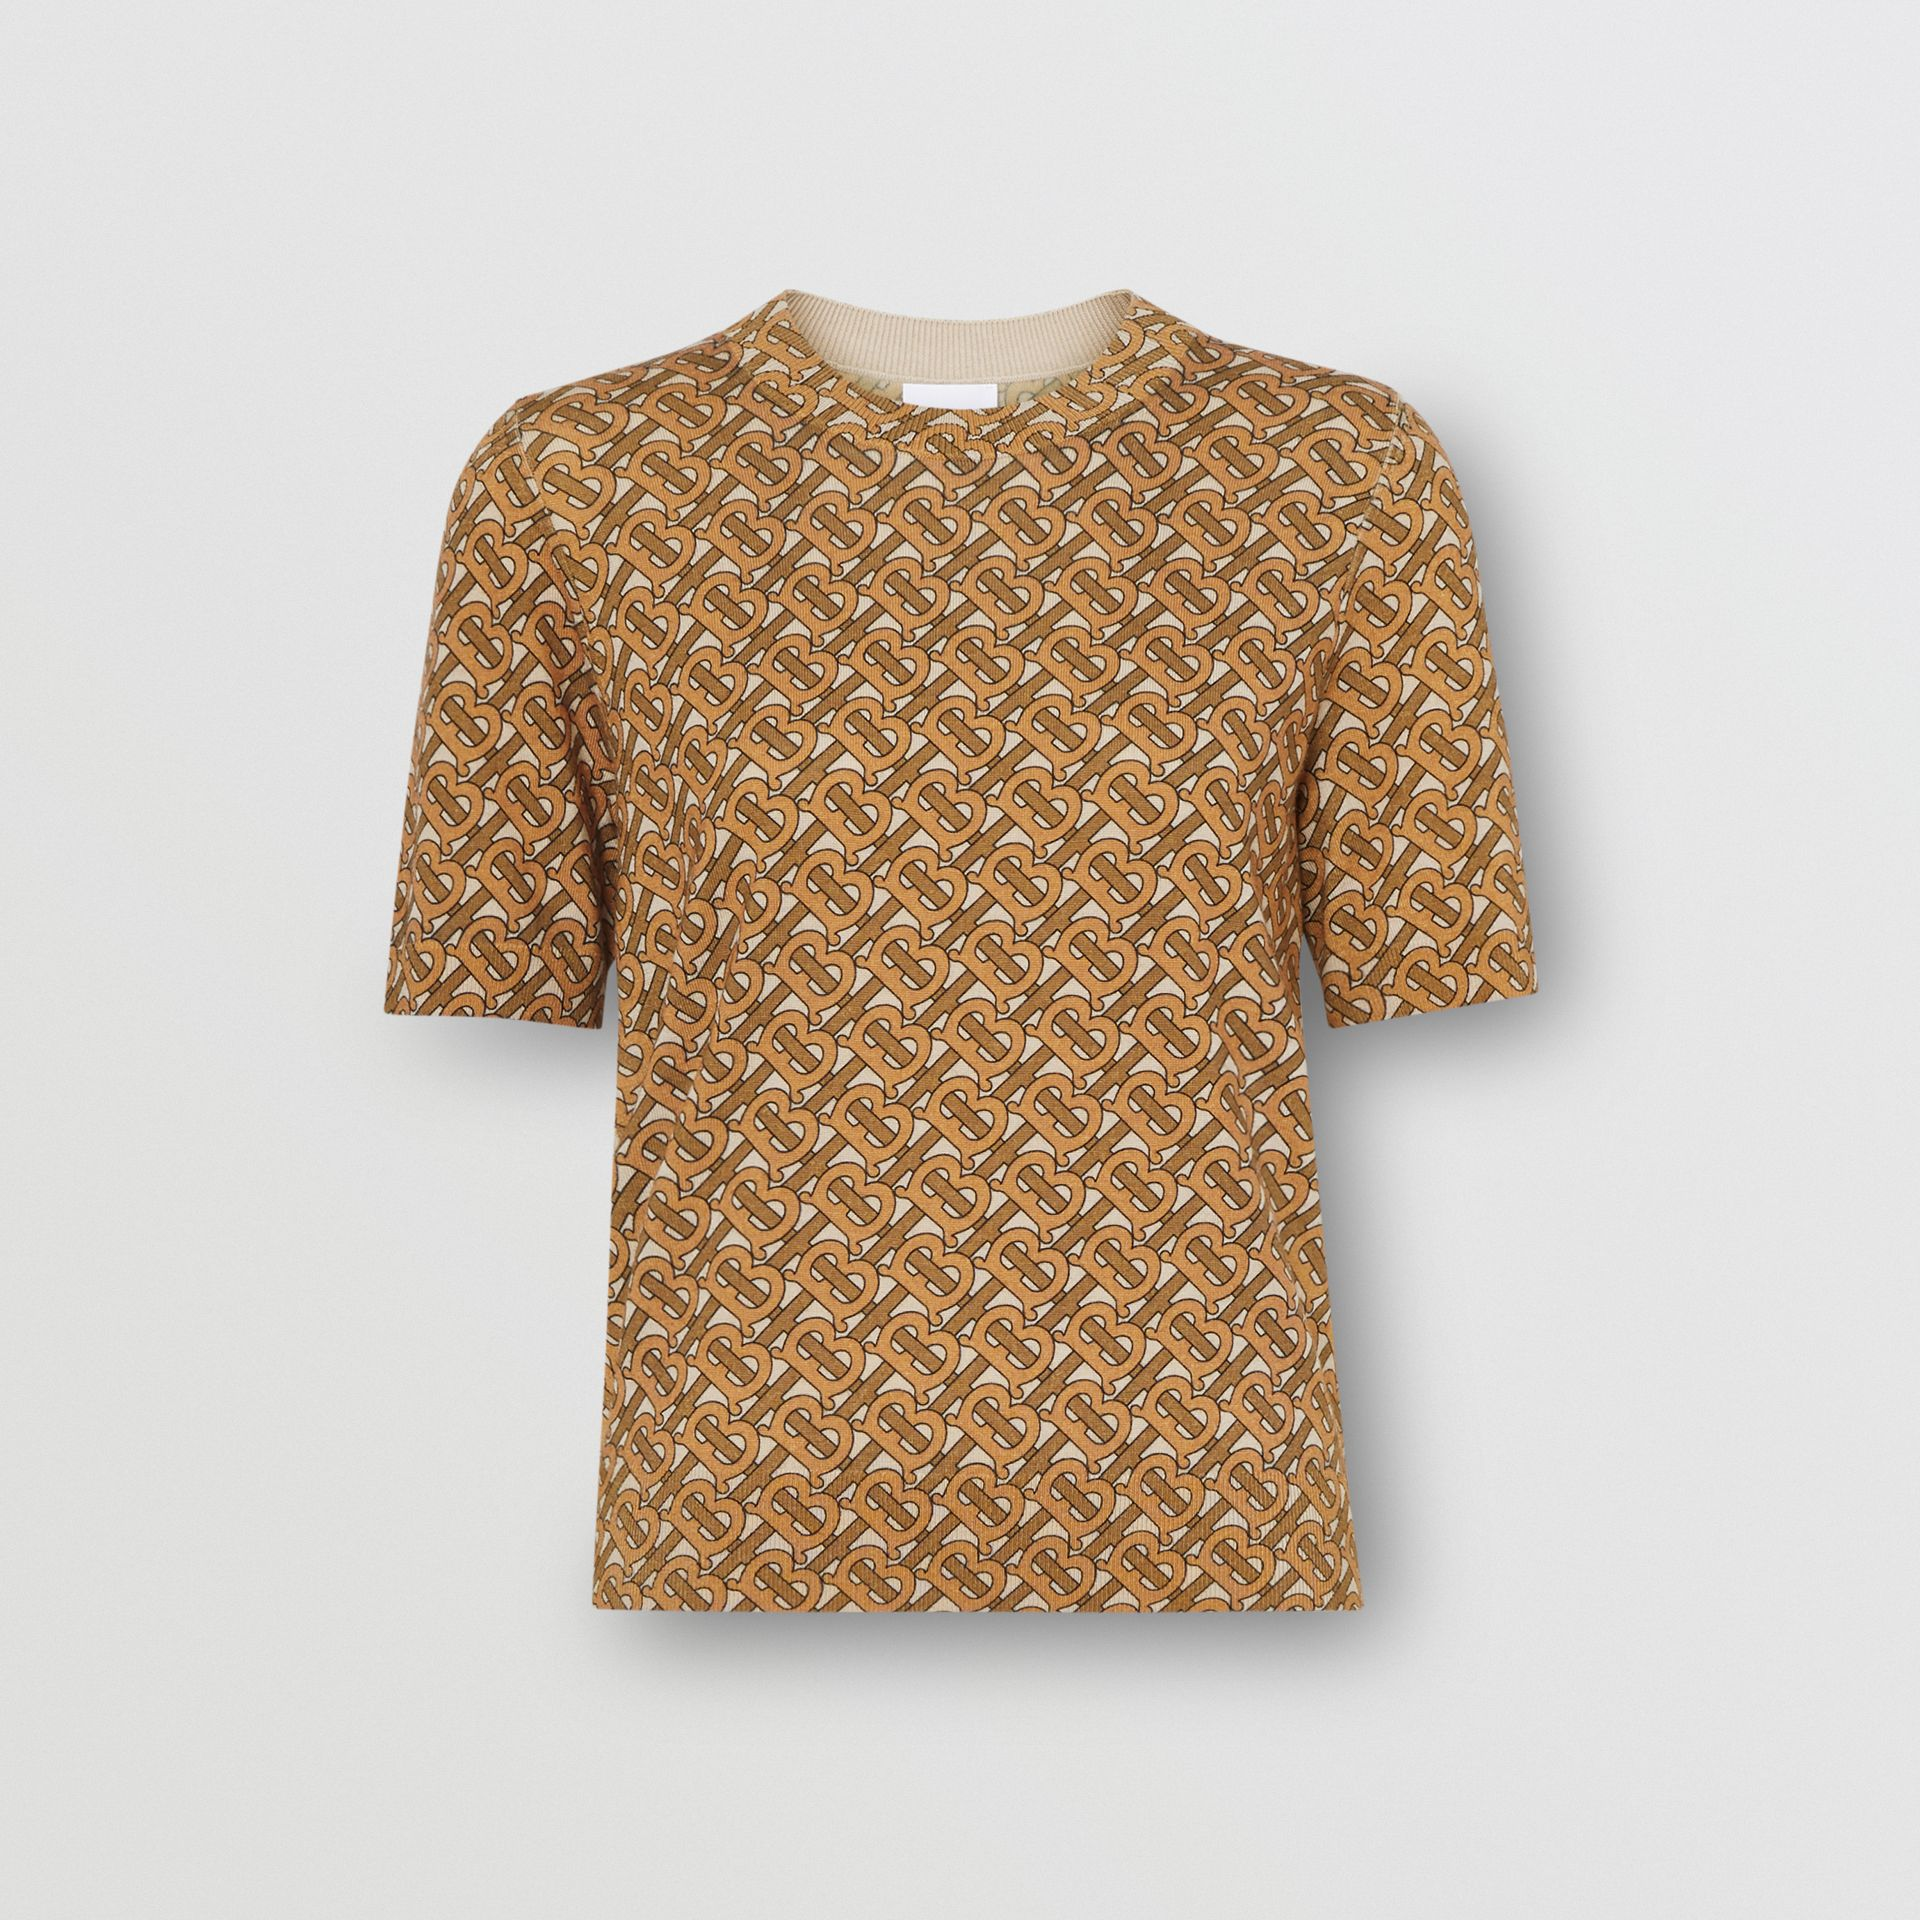 Monogram Print Merino Wool Top in Beige - Women | Burberry Australia - gallery image 3